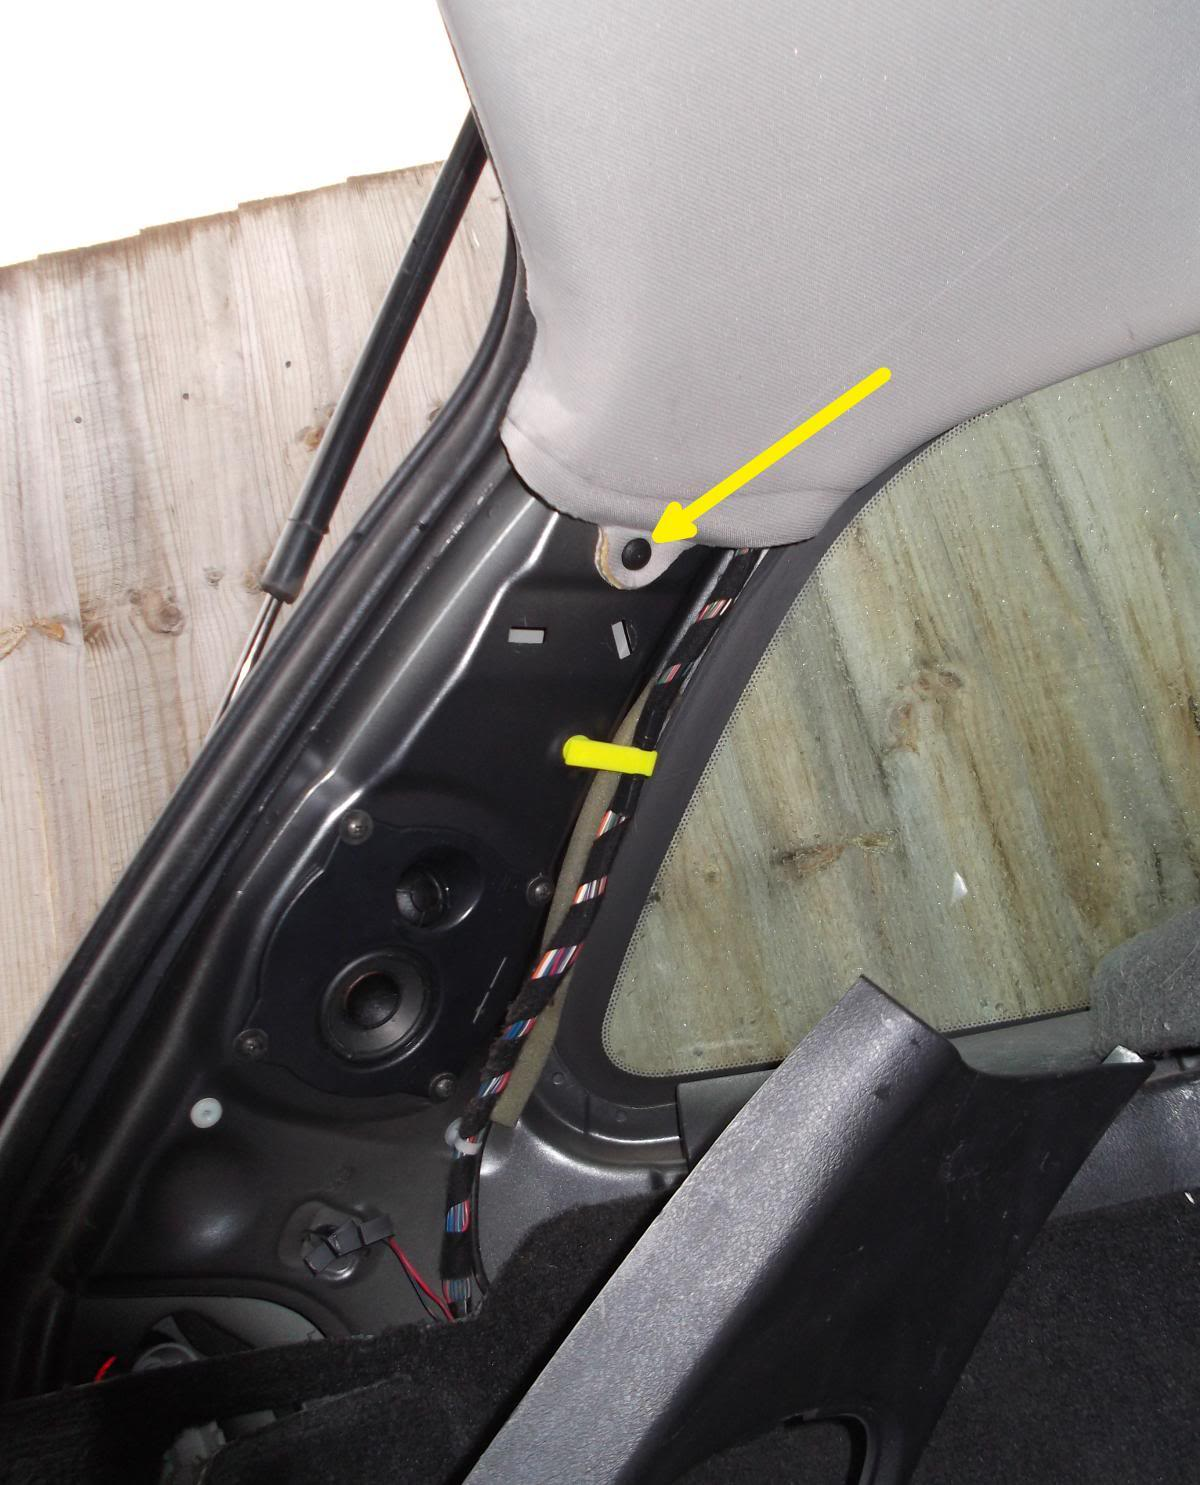 How to replace / install radio aerial - Volvo V40 (1996 - 2004)